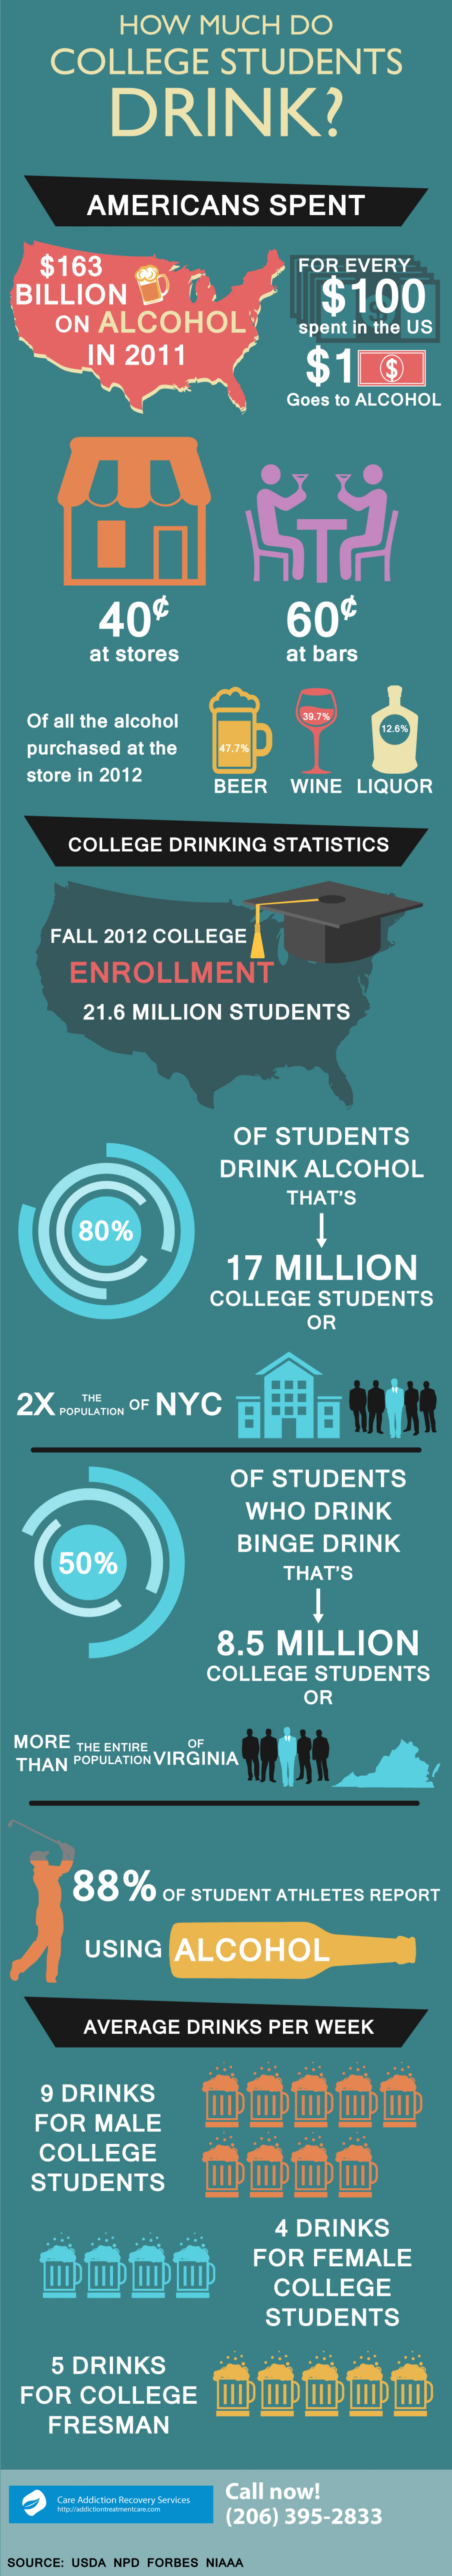 How Much Do College Students Drink   Care Addiction Recovery Services Infographic